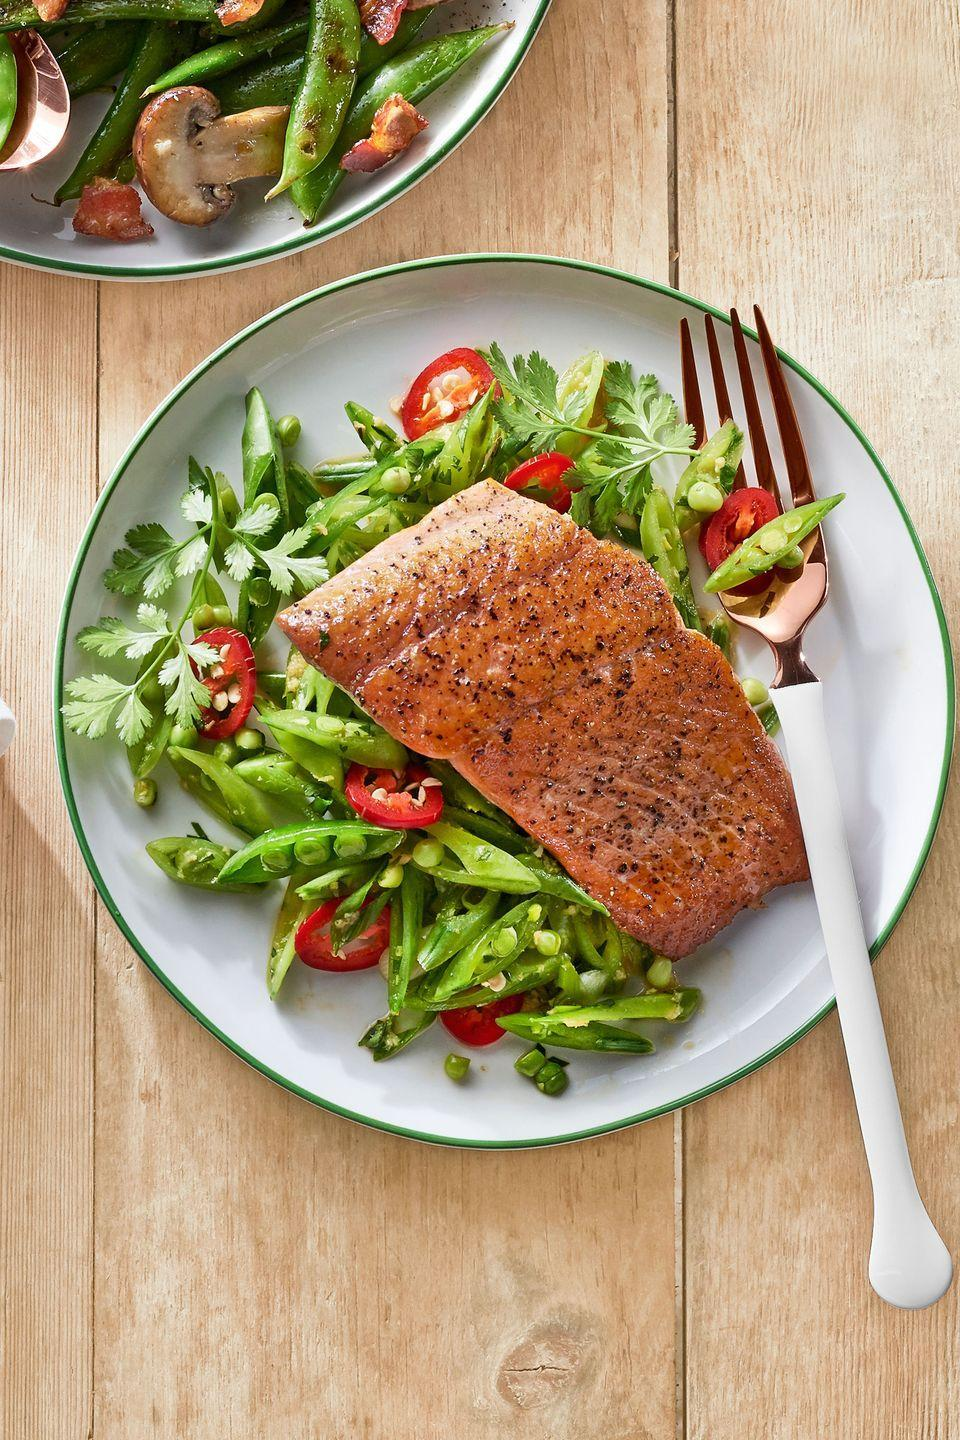 """<p>Bring a little snap (peas) to the table with this quick and easy dinner.</p><p><strong><a href=""""https://www.countryliving.com/food-drinks/recipes/a37755/gingery-snap-pea-slaw-with-seared-salmon-recipe/"""" rel=""""nofollow noopener"""" target=""""_blank"""" data-ylk=""""slk:Get the recipe"""" class=""""link rapid-noclick-resp"""">Get the recipe</a>.</strong></p>"""